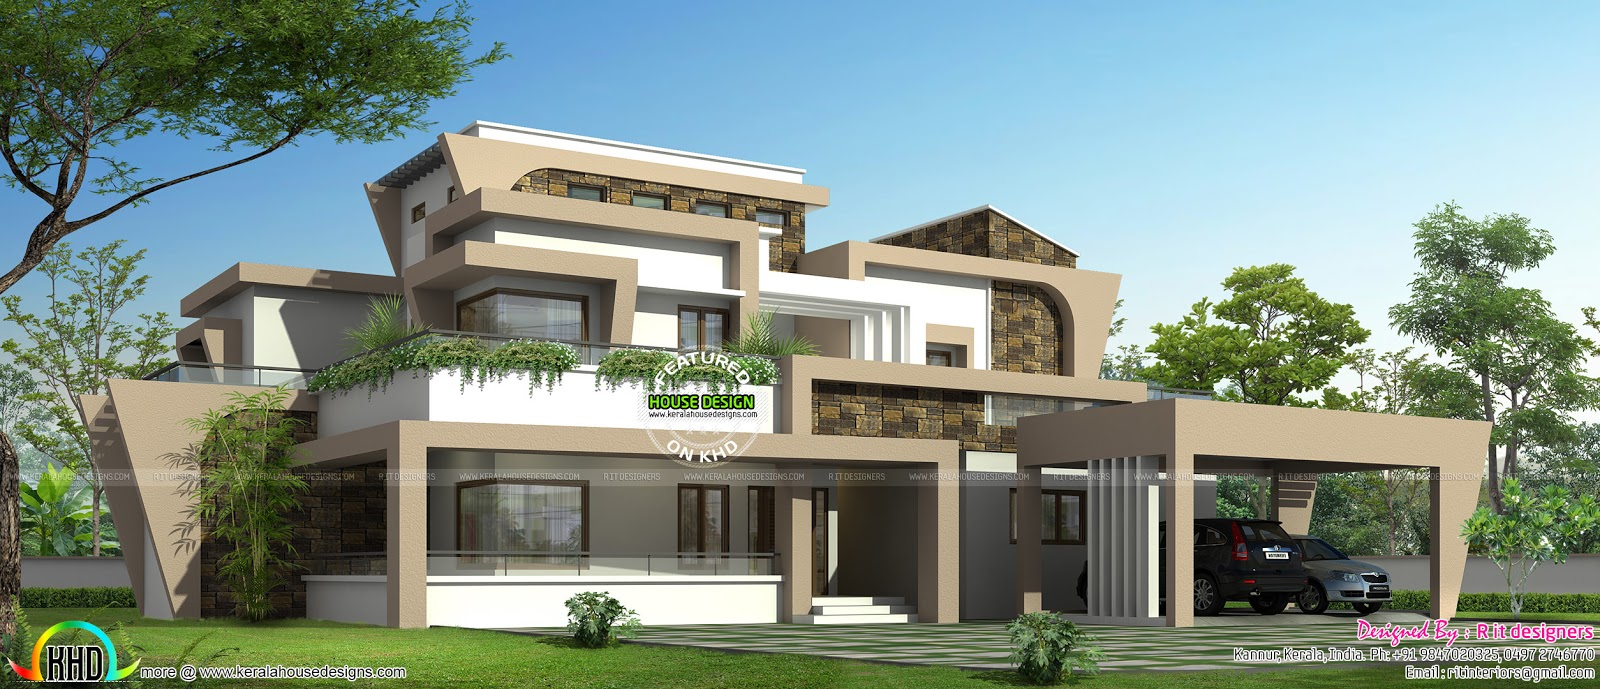 Unique modern home design in kerala kerala home design Modern home house plans